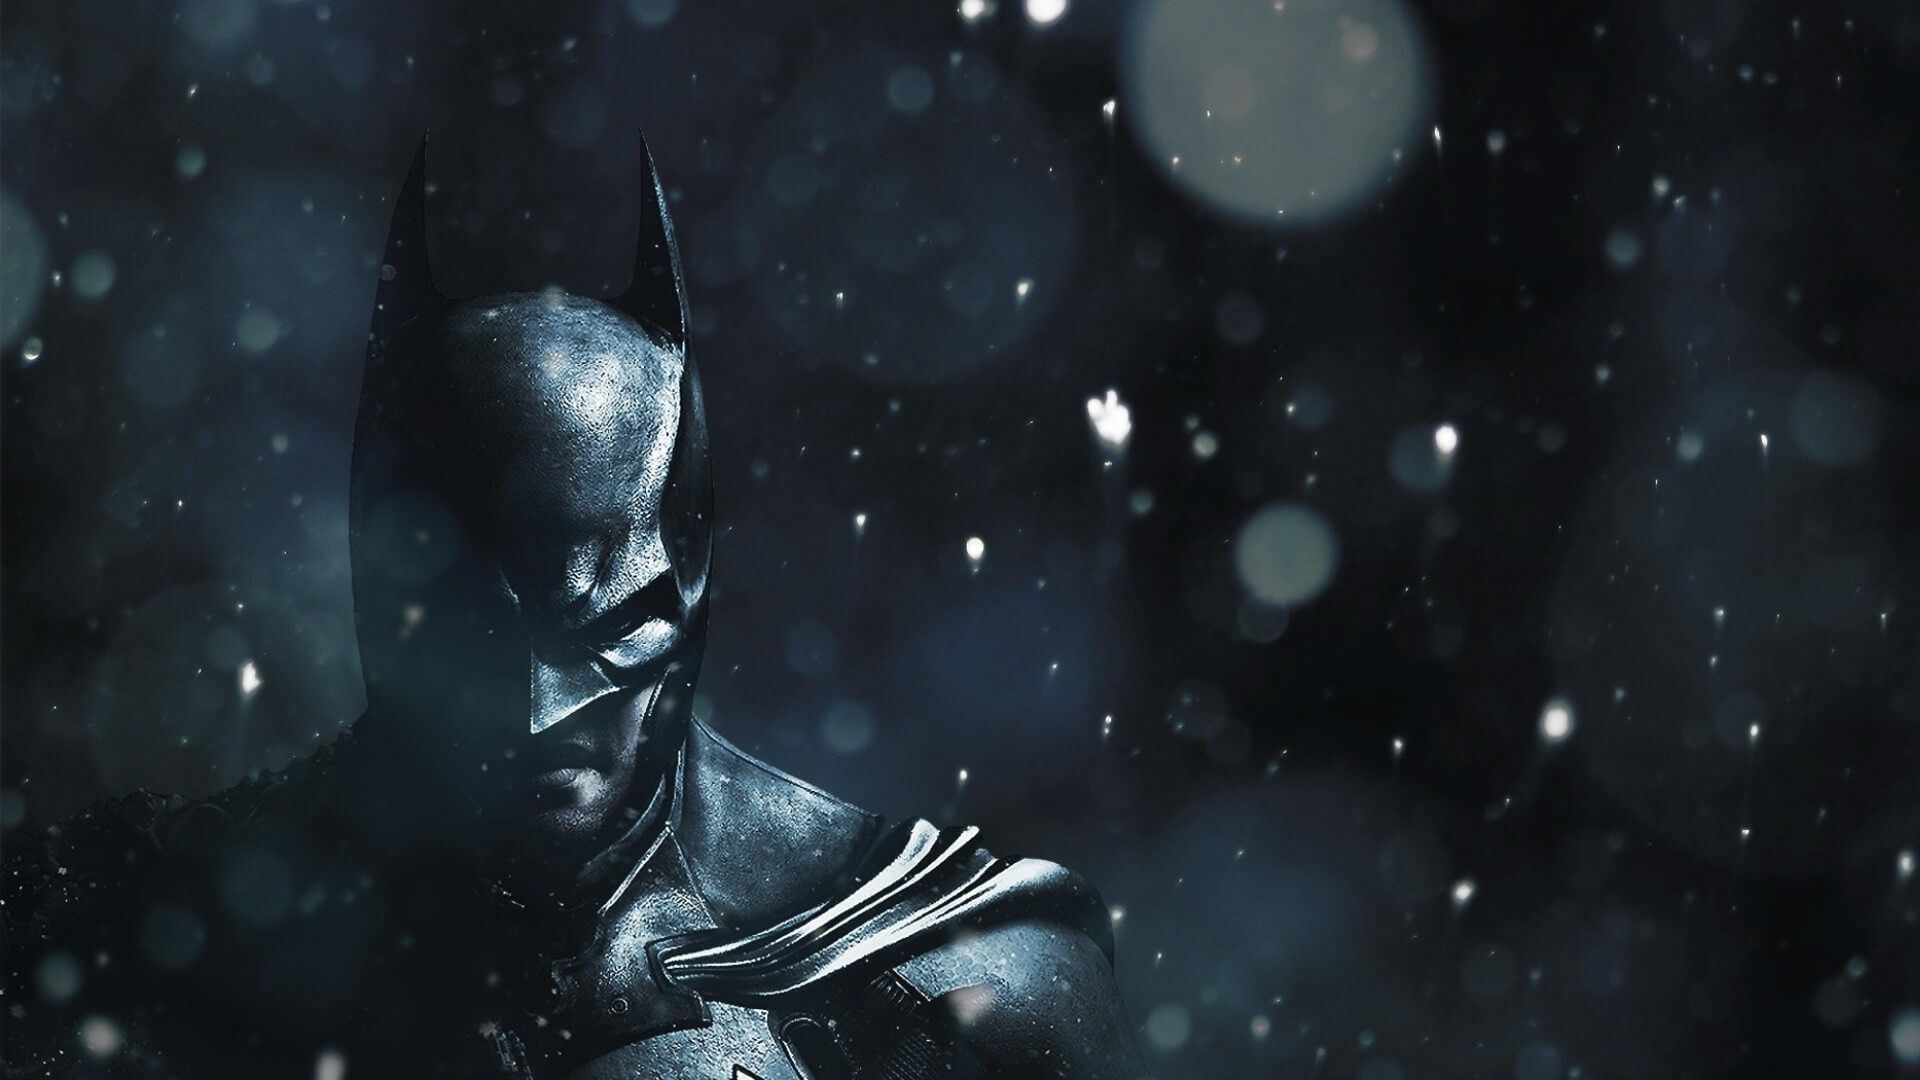 Batman hd wallpapers for android download free hd wallpapers 1920 batman hd wallpapers for android download free hd wallpapers 19201080 batman hd wallpapers voltagebd Choice Image